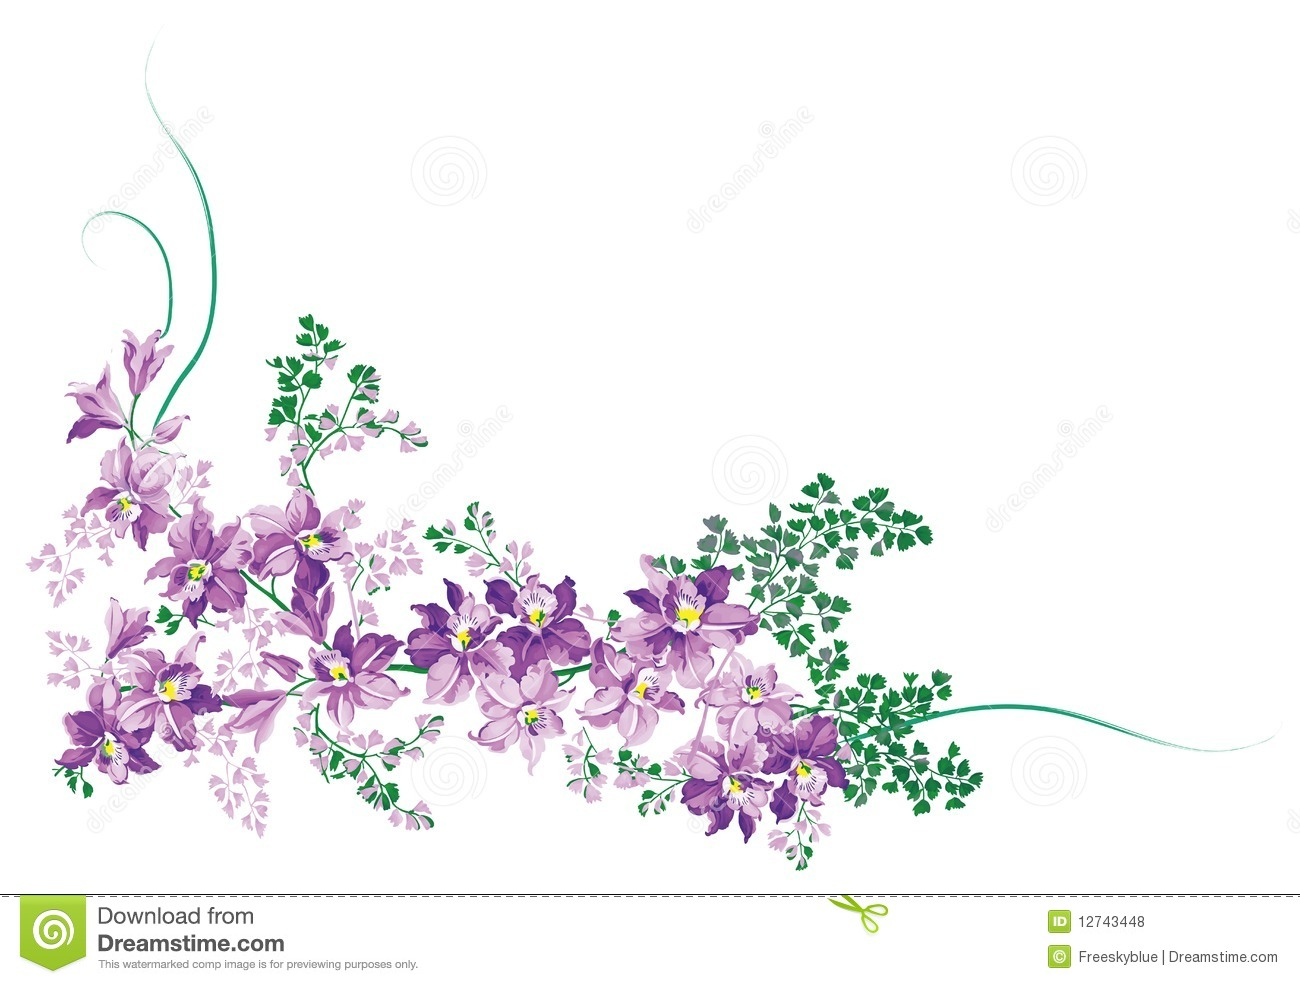 Drawing of flowers and vine in a white background. Flower Vine Clipart